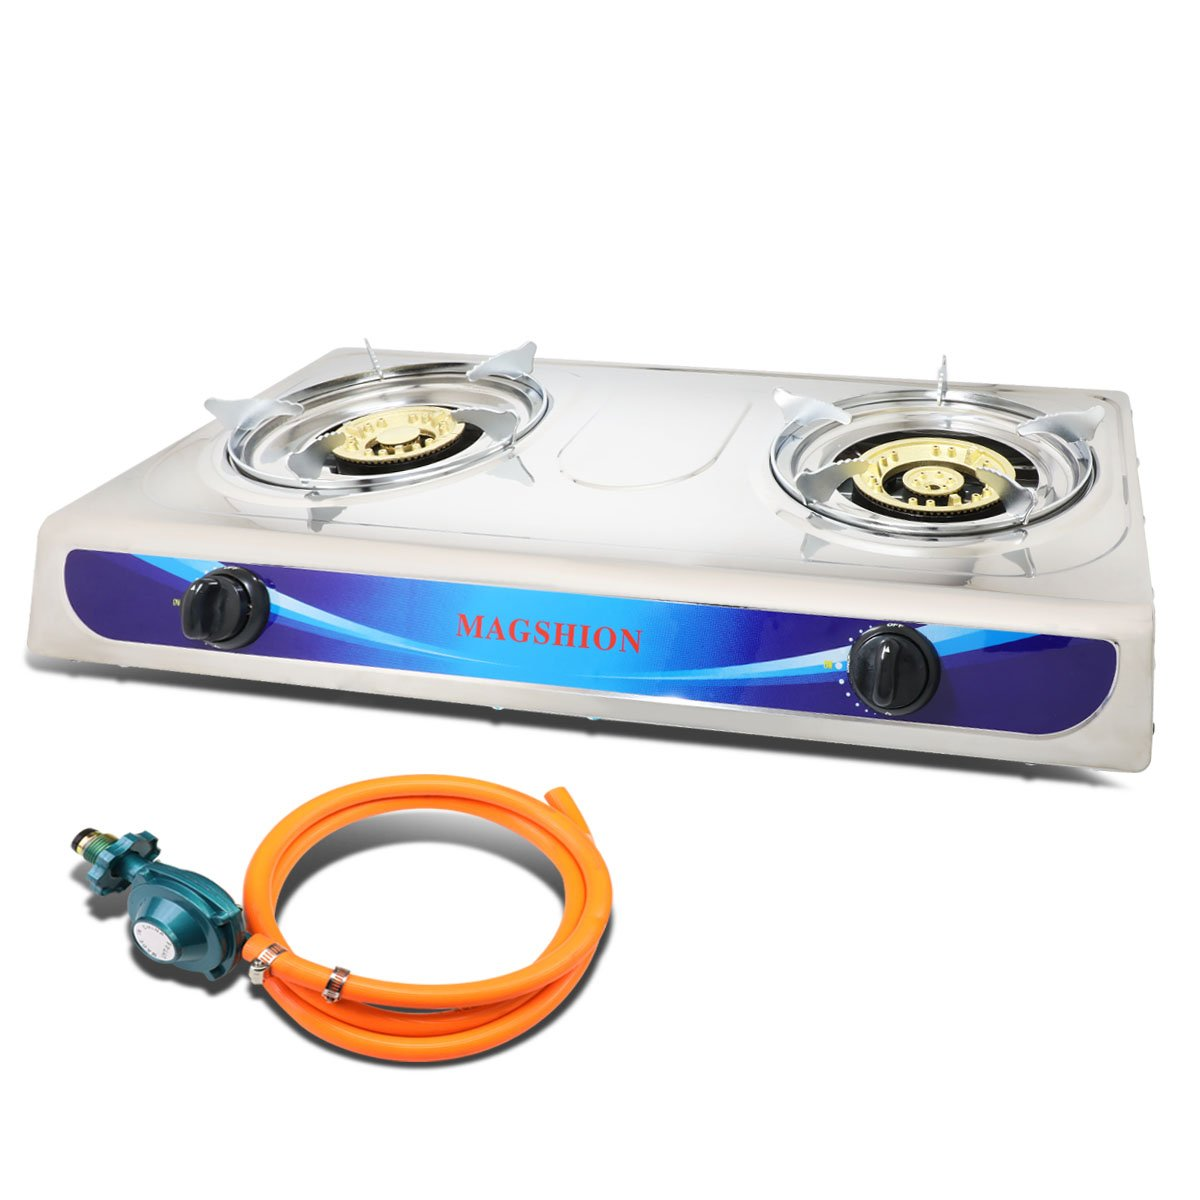 Magshion Double Portable Propane Gas Stove Large Brass Burner With Hose & Regulator by Magshion